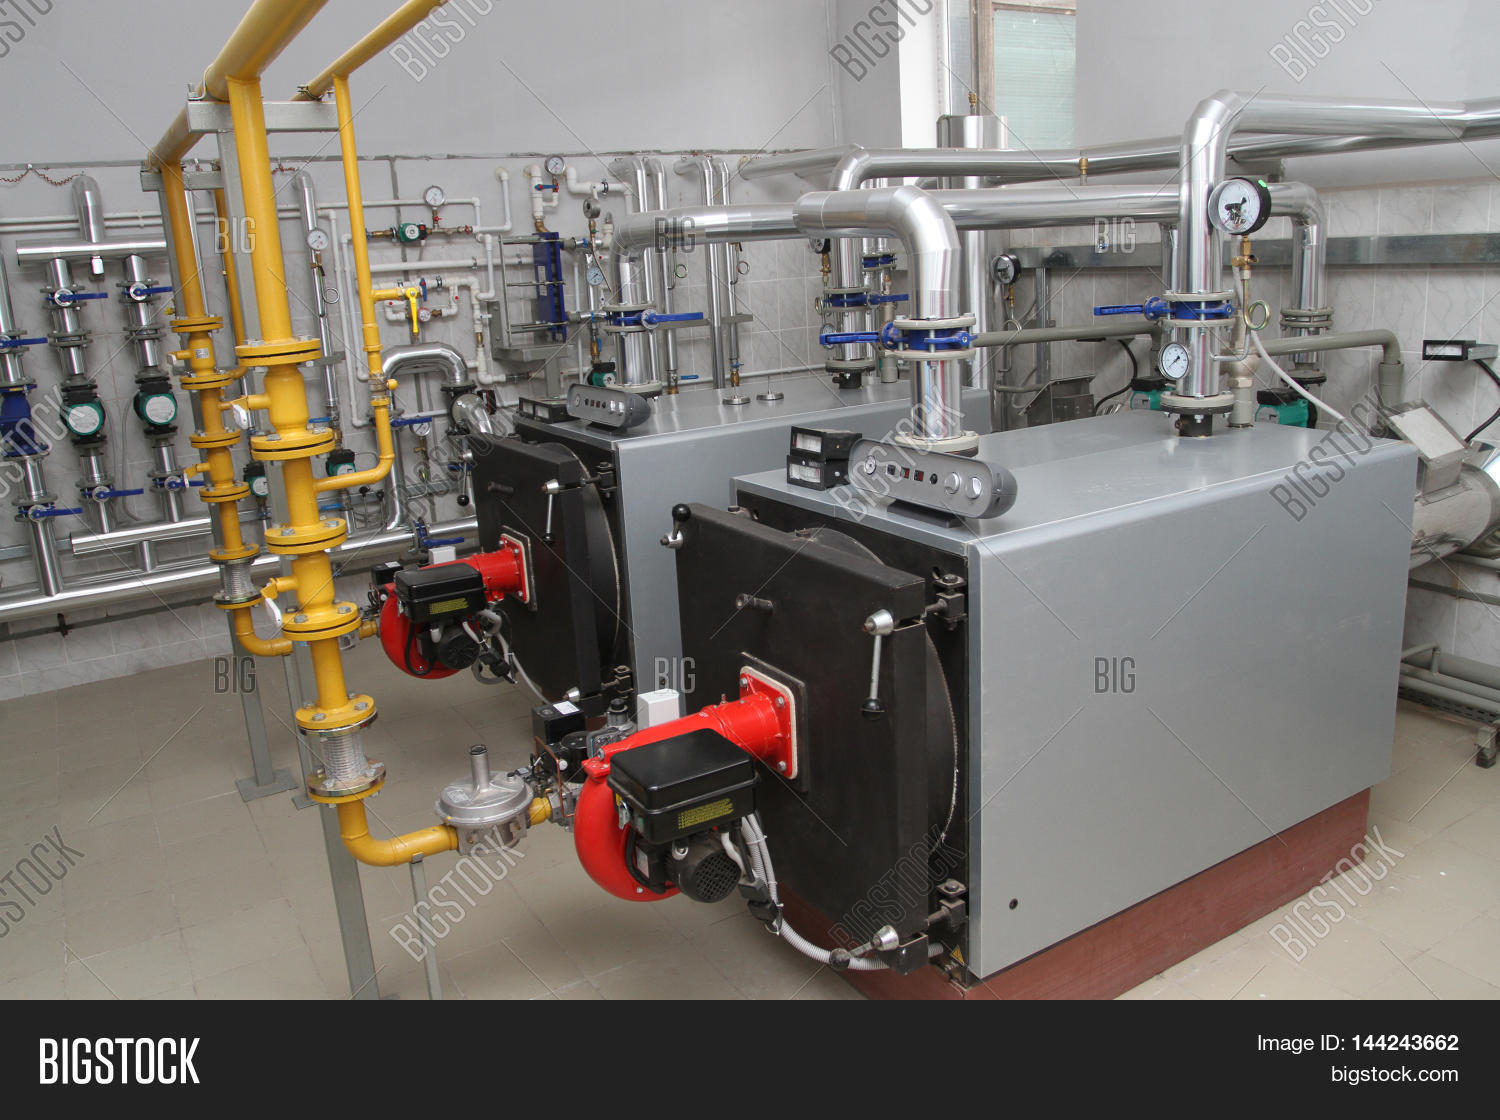 Two Gas Boilers Modern Image & Photo (Free Trial) | Bigstock